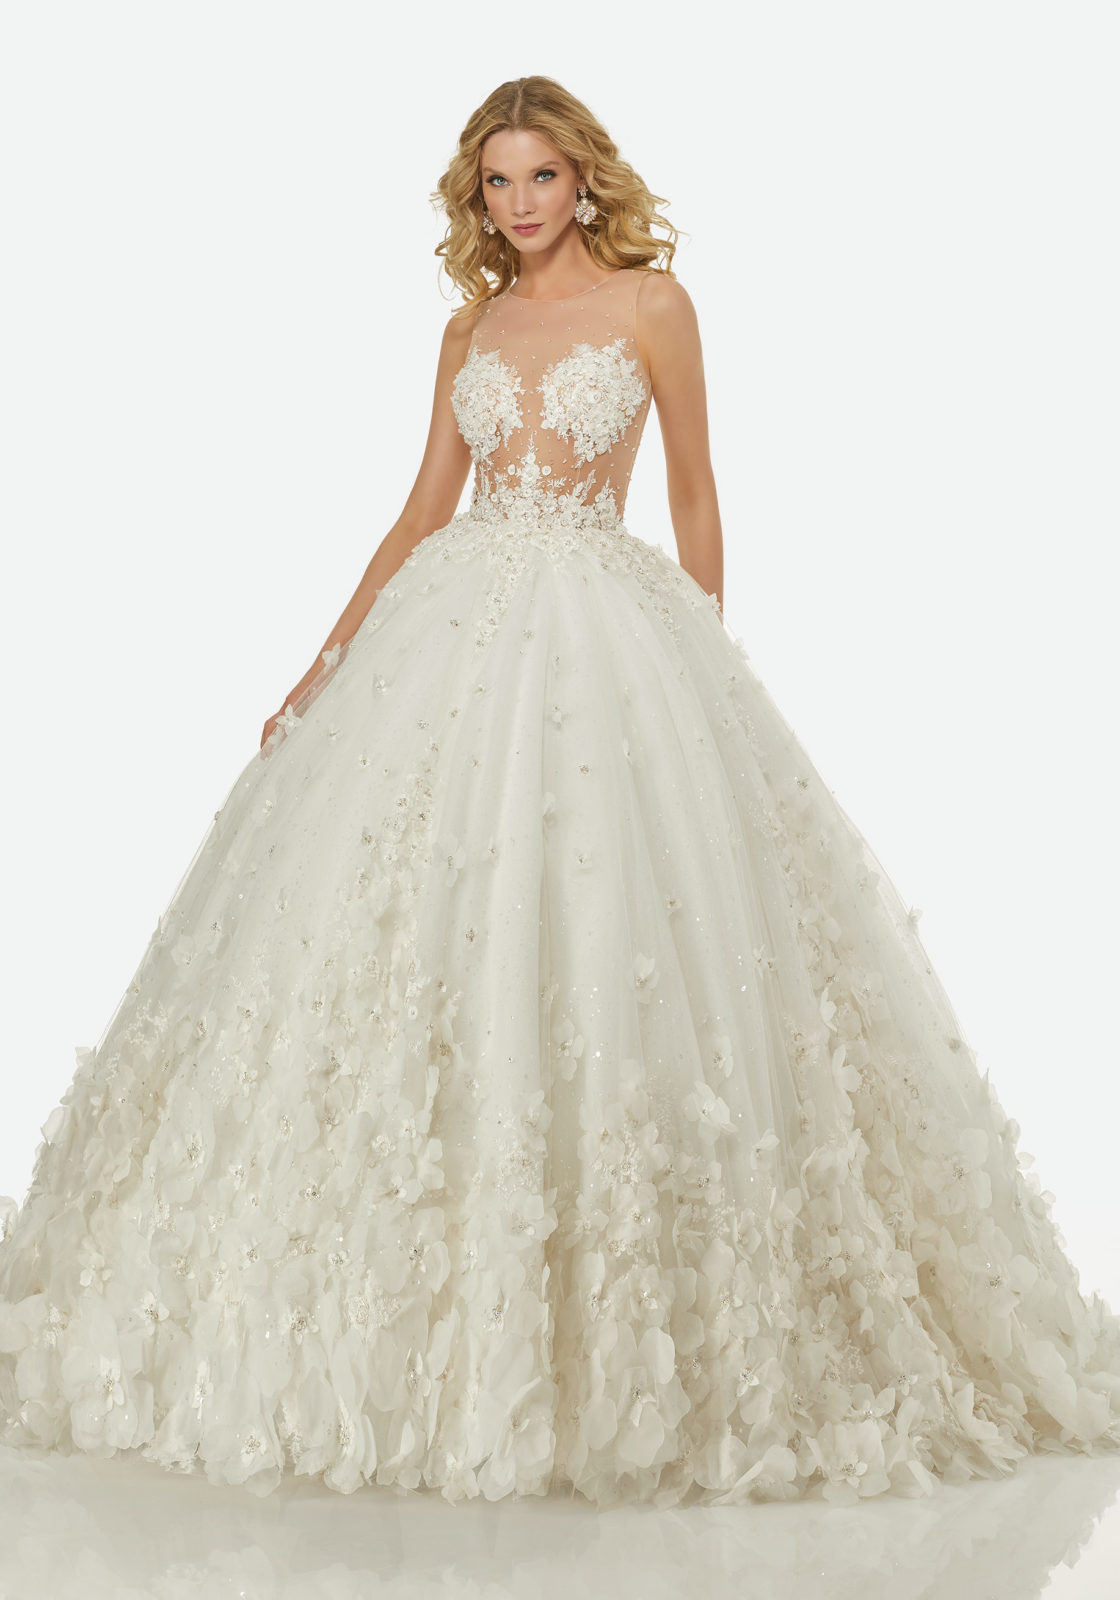 The new Randy Fenoli line